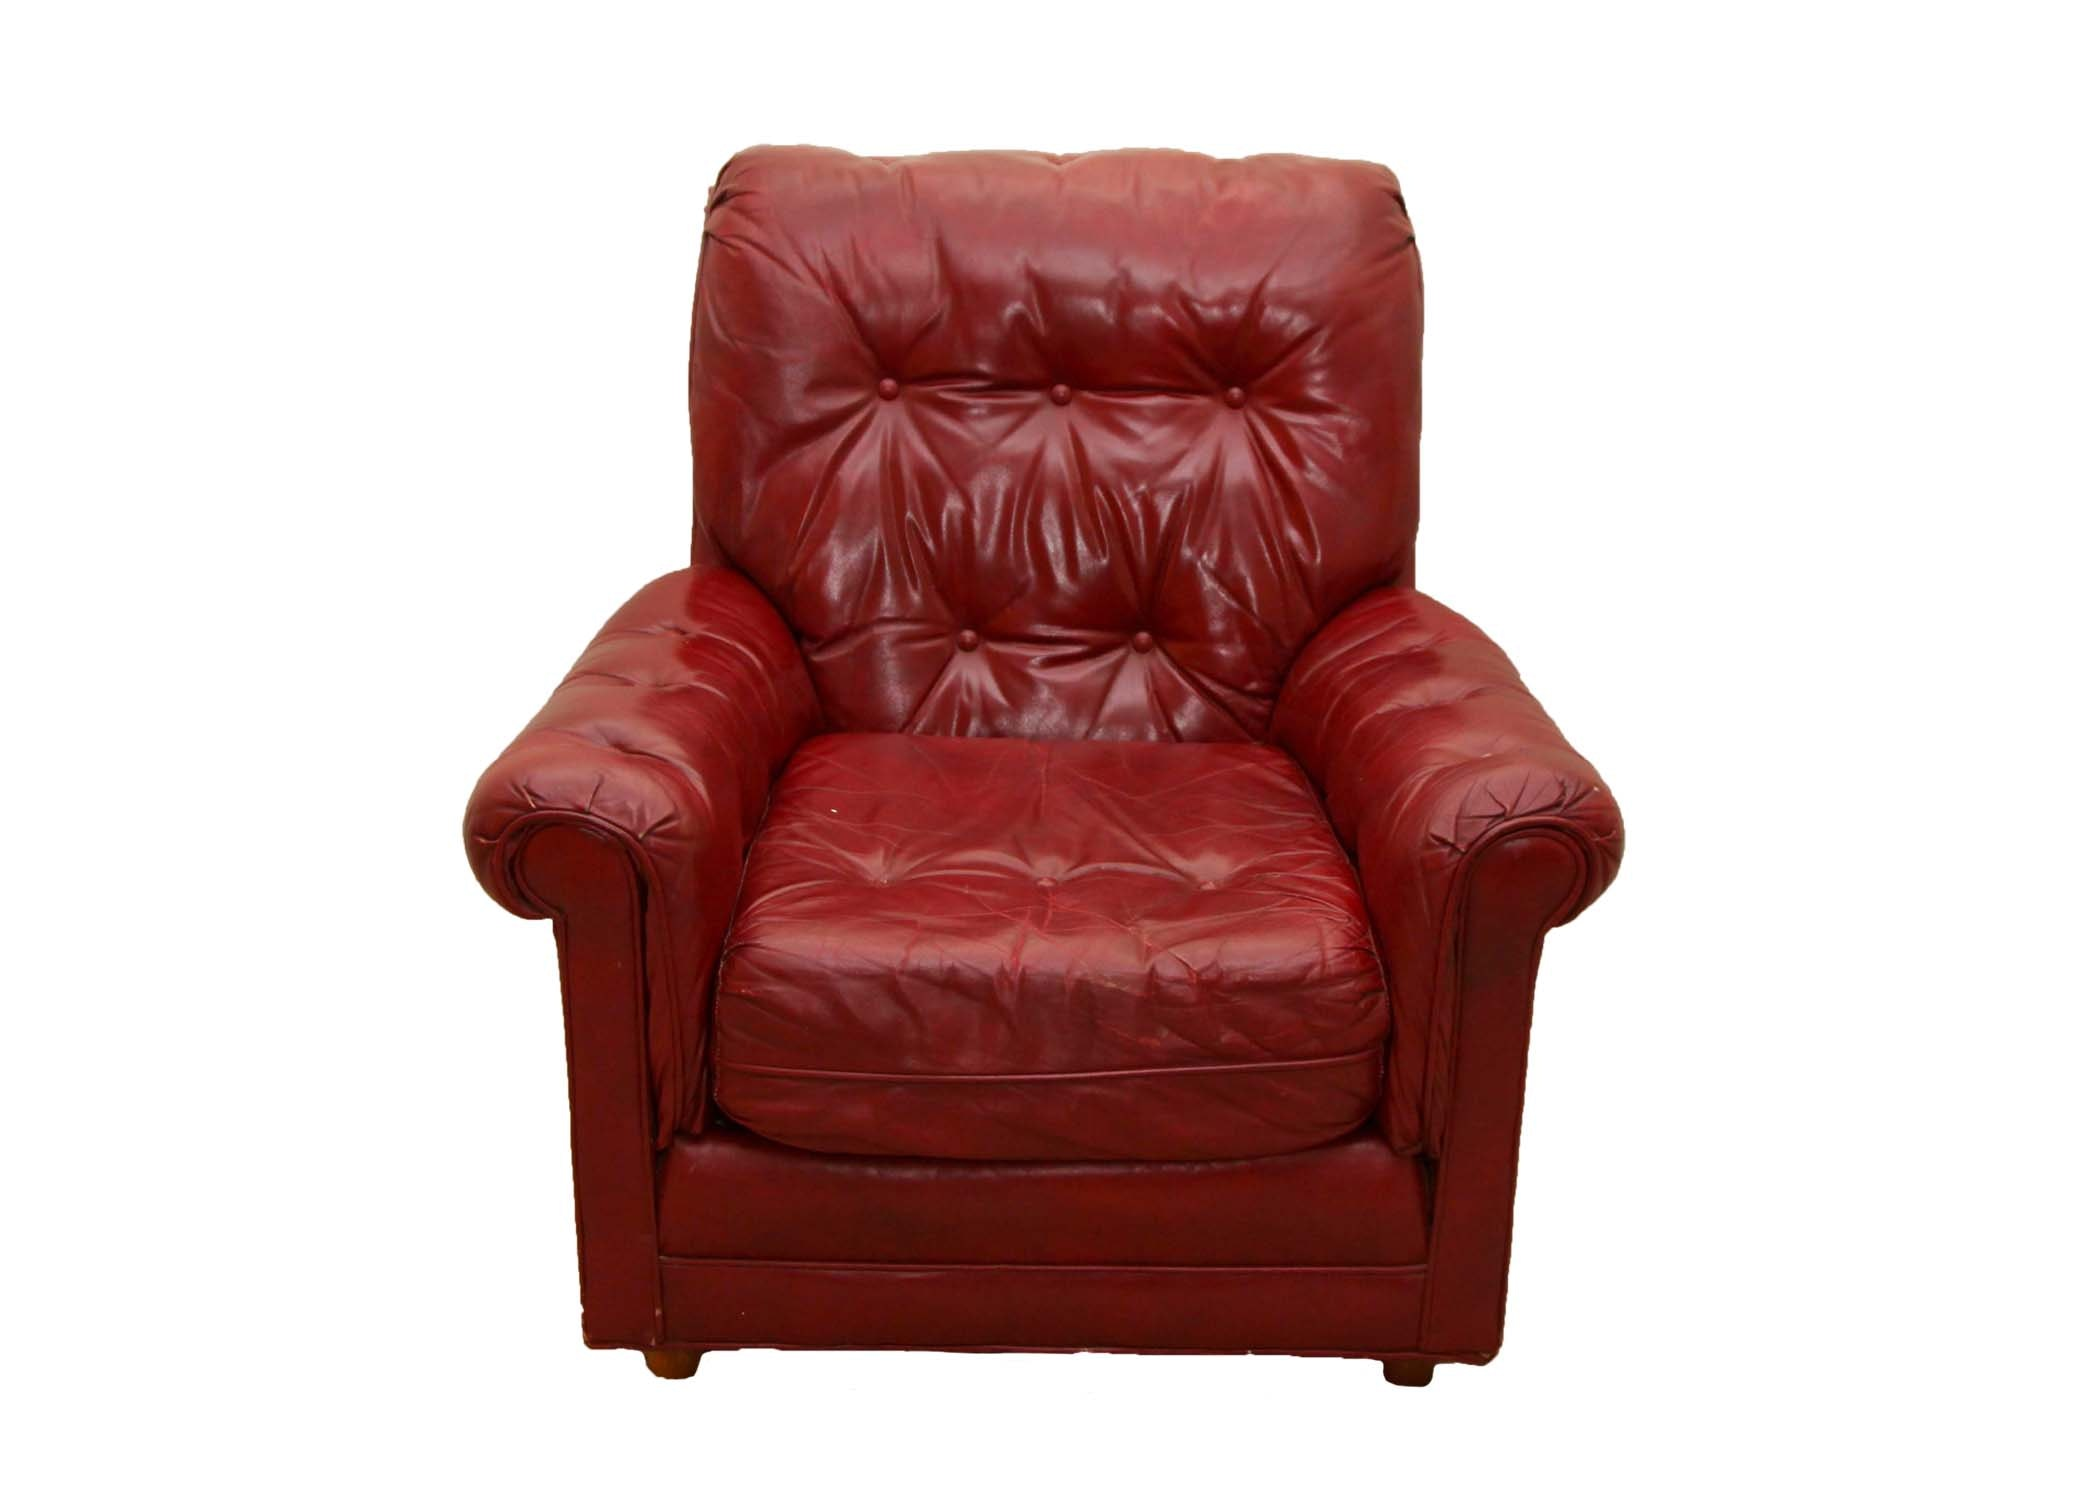 North Hickory Furniture Co. Red Leather Armchair